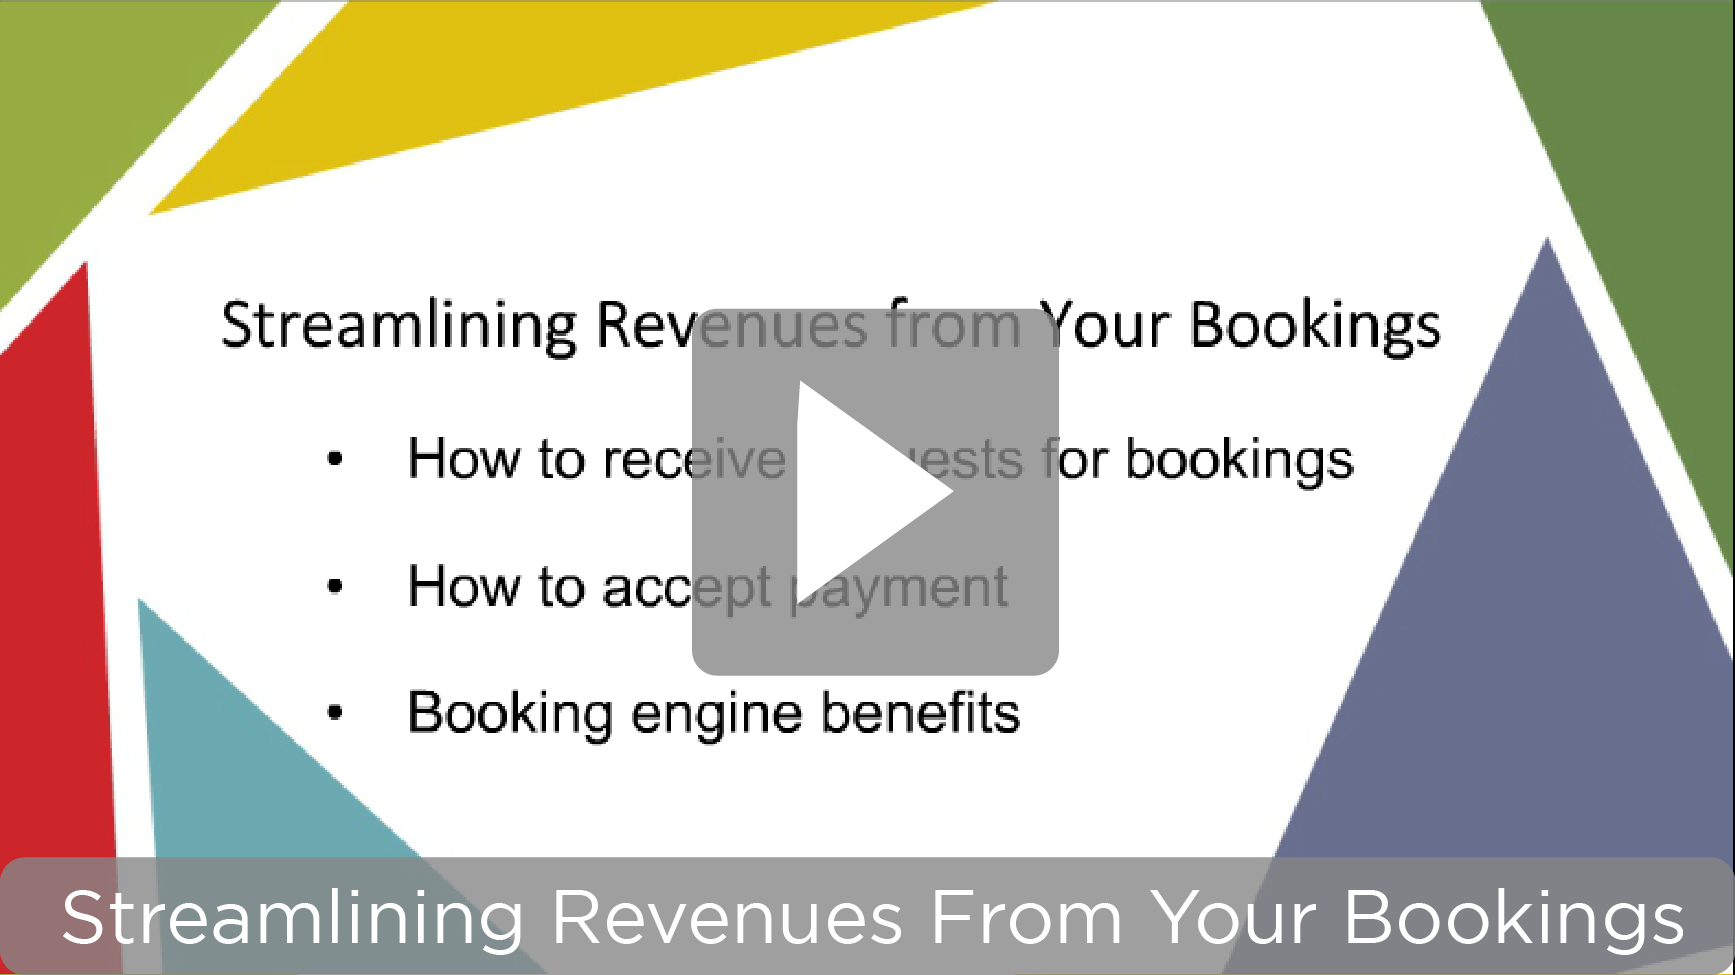 Video link – Streamlining Revenues webinar